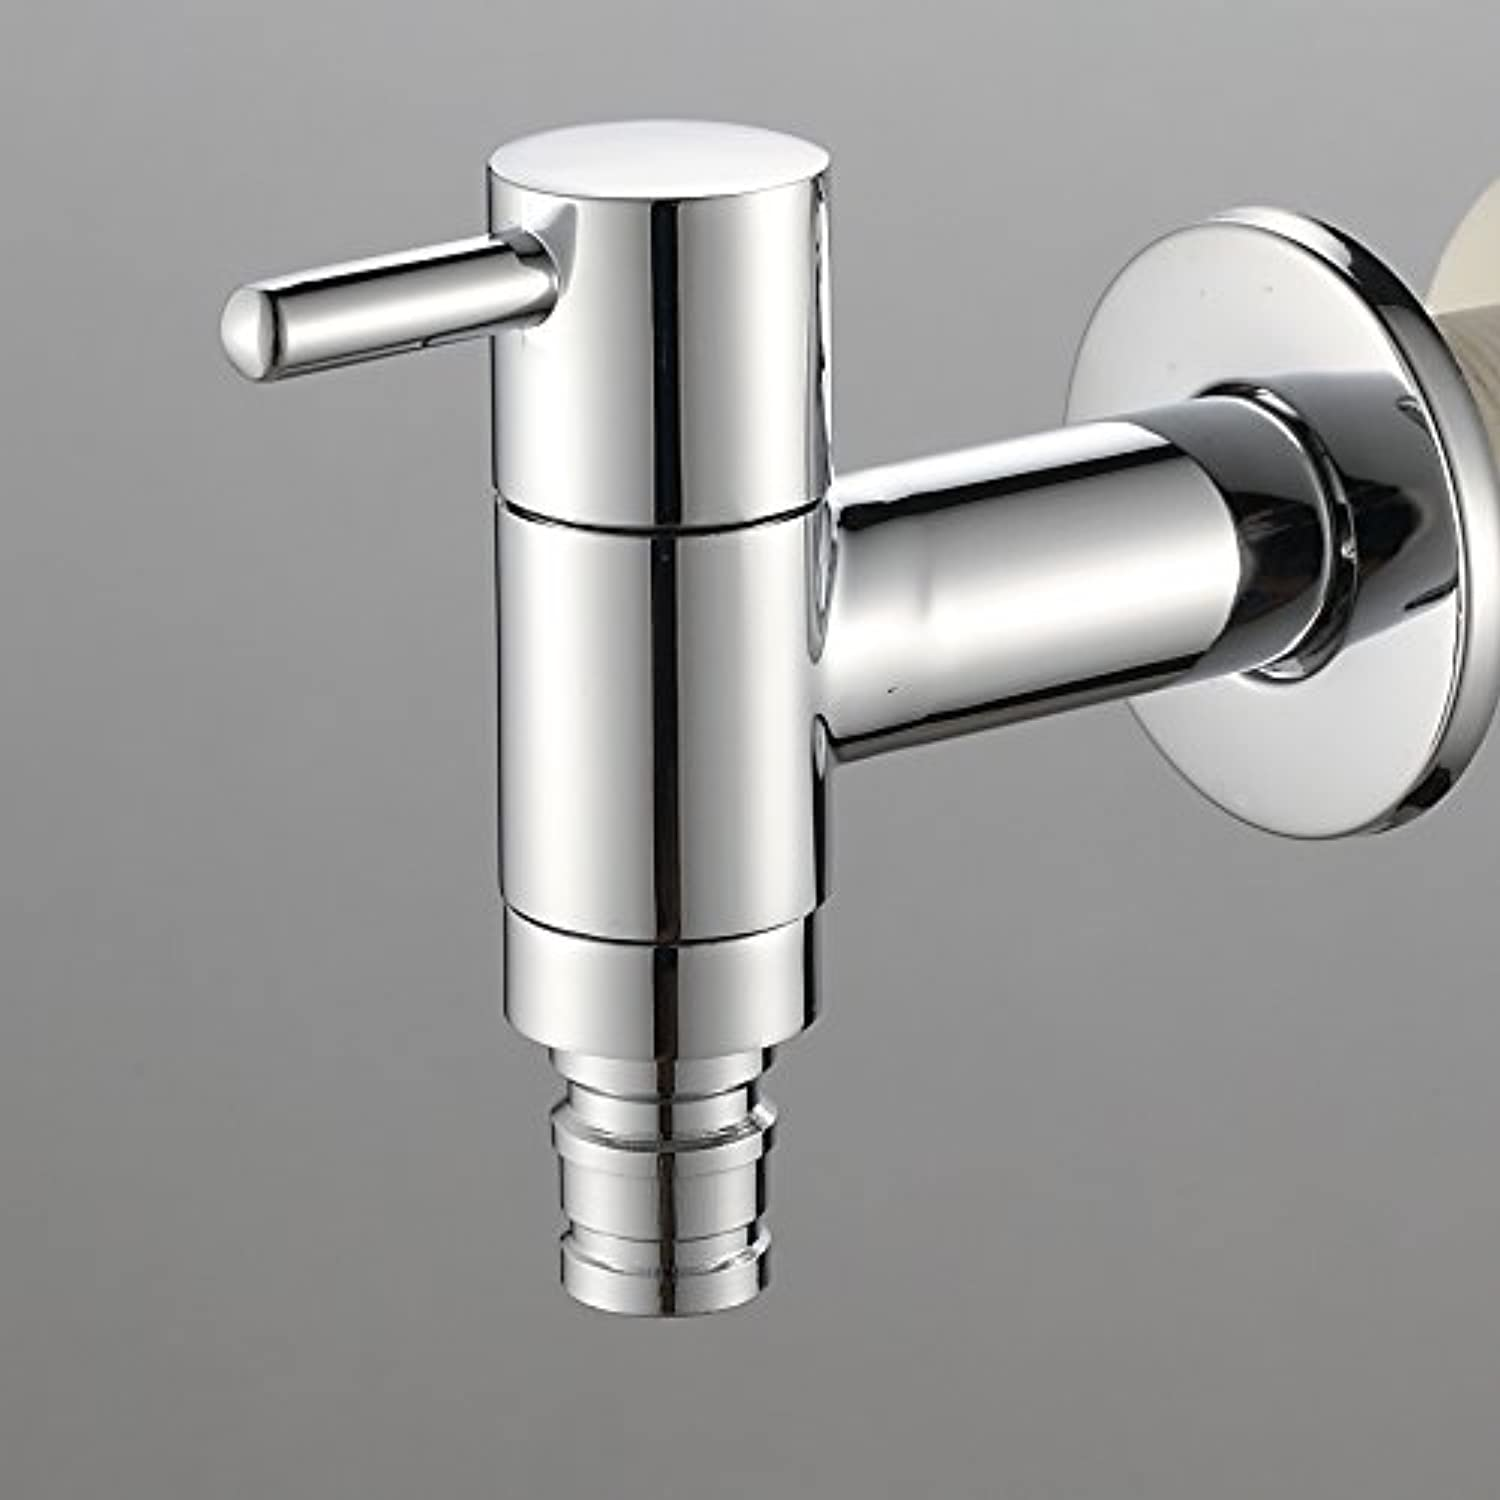 Retro Deluxe Fauceting Brass Washer Bathroom Wash Tap Chrome Plated Washer Free Shipping